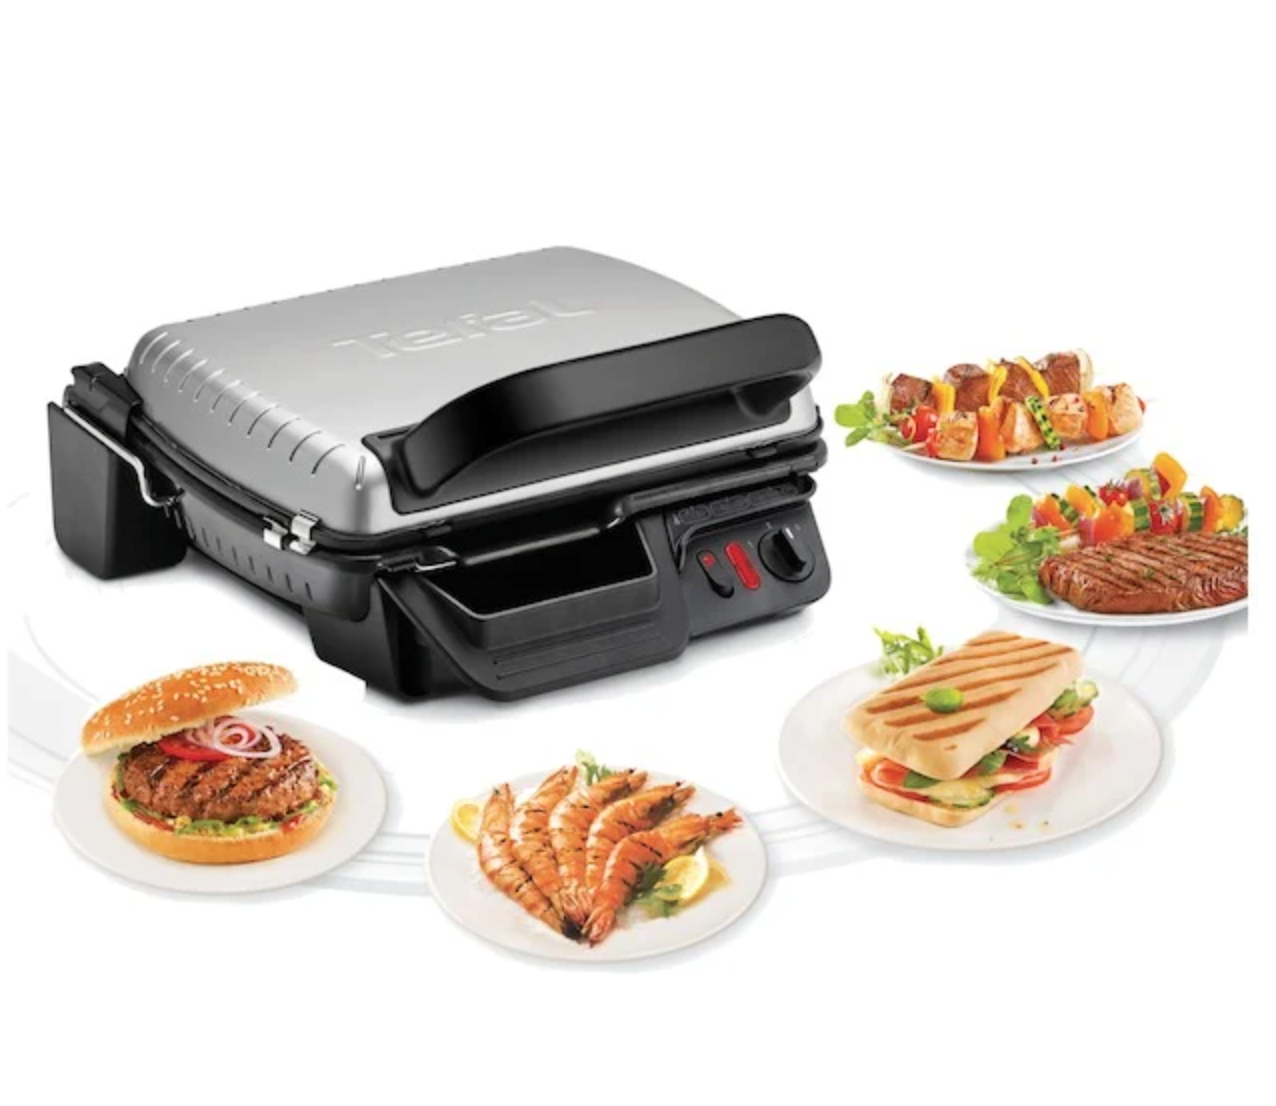 Tefal contact grill gc3050